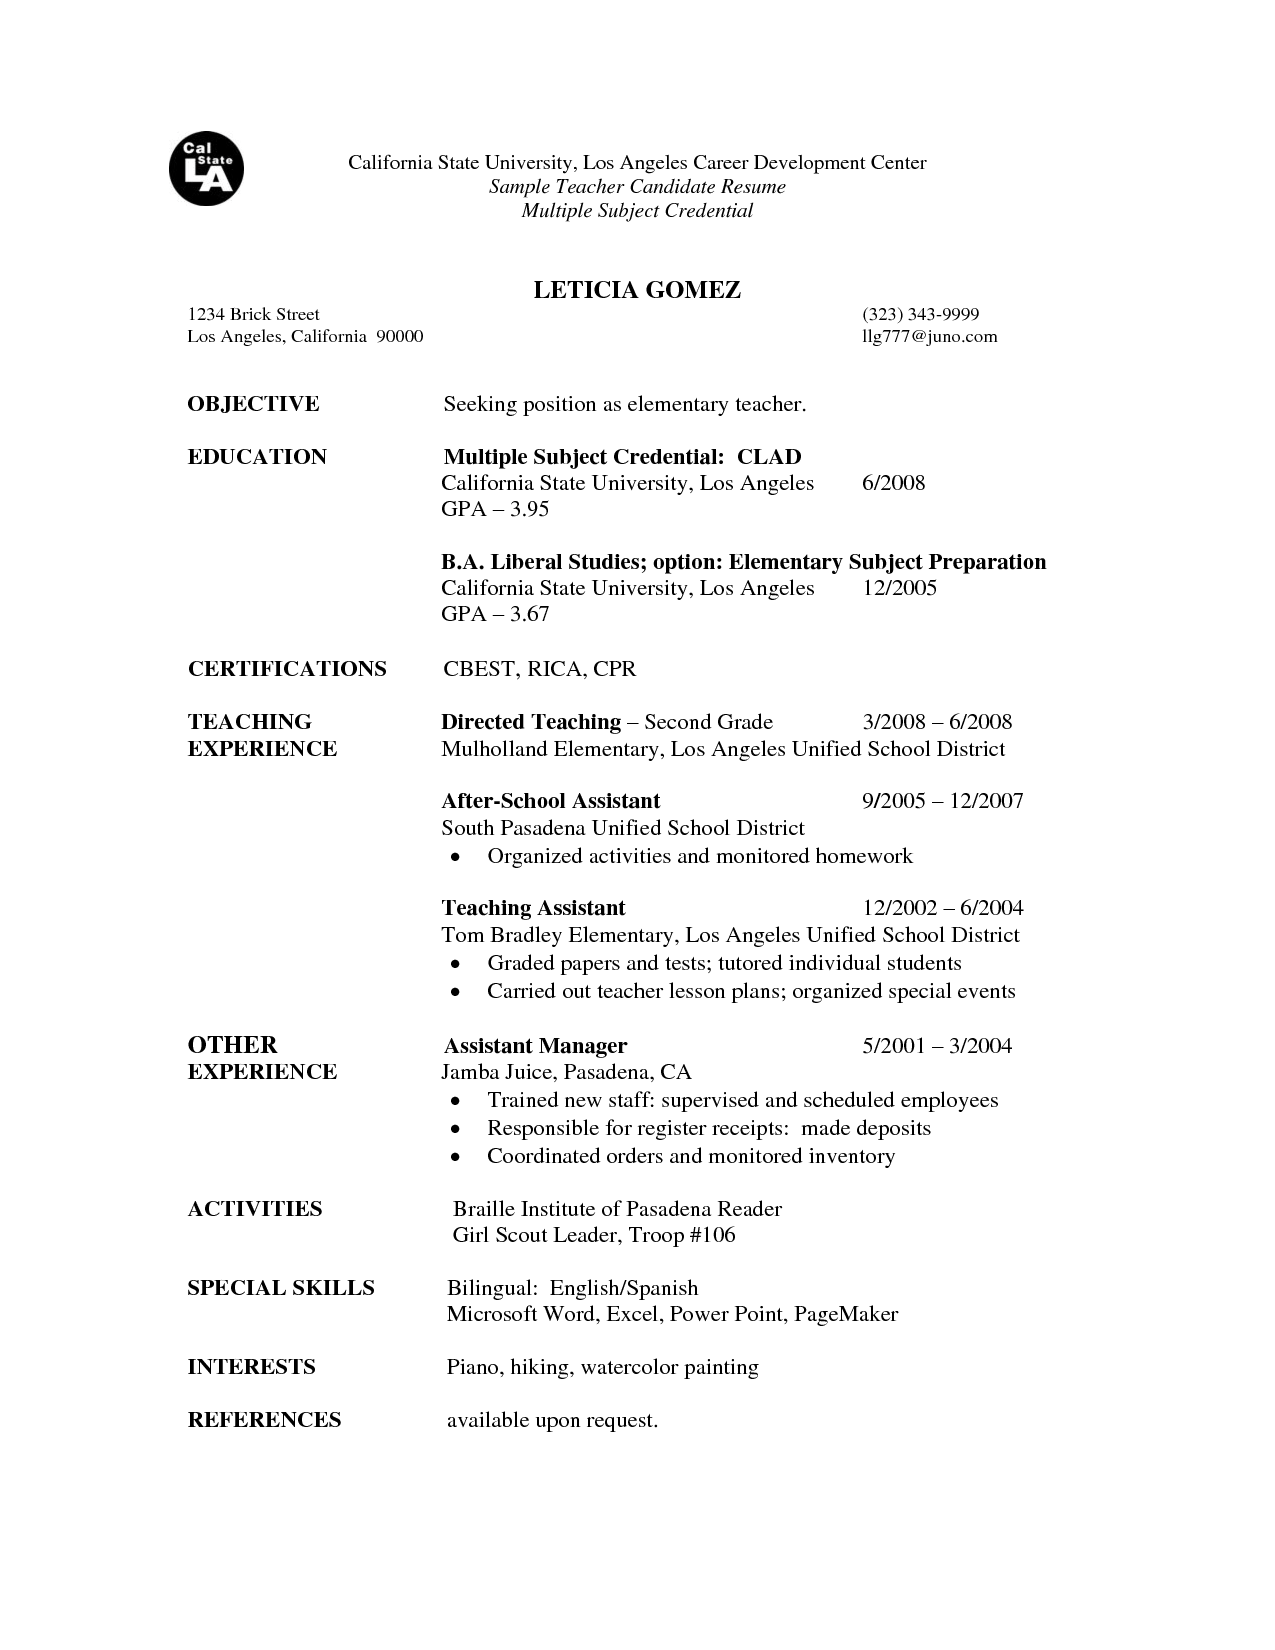 Teacher Resume Examples Captivating Image Result For First Resume For Teacher  Resume  Pinterest Design Ideas